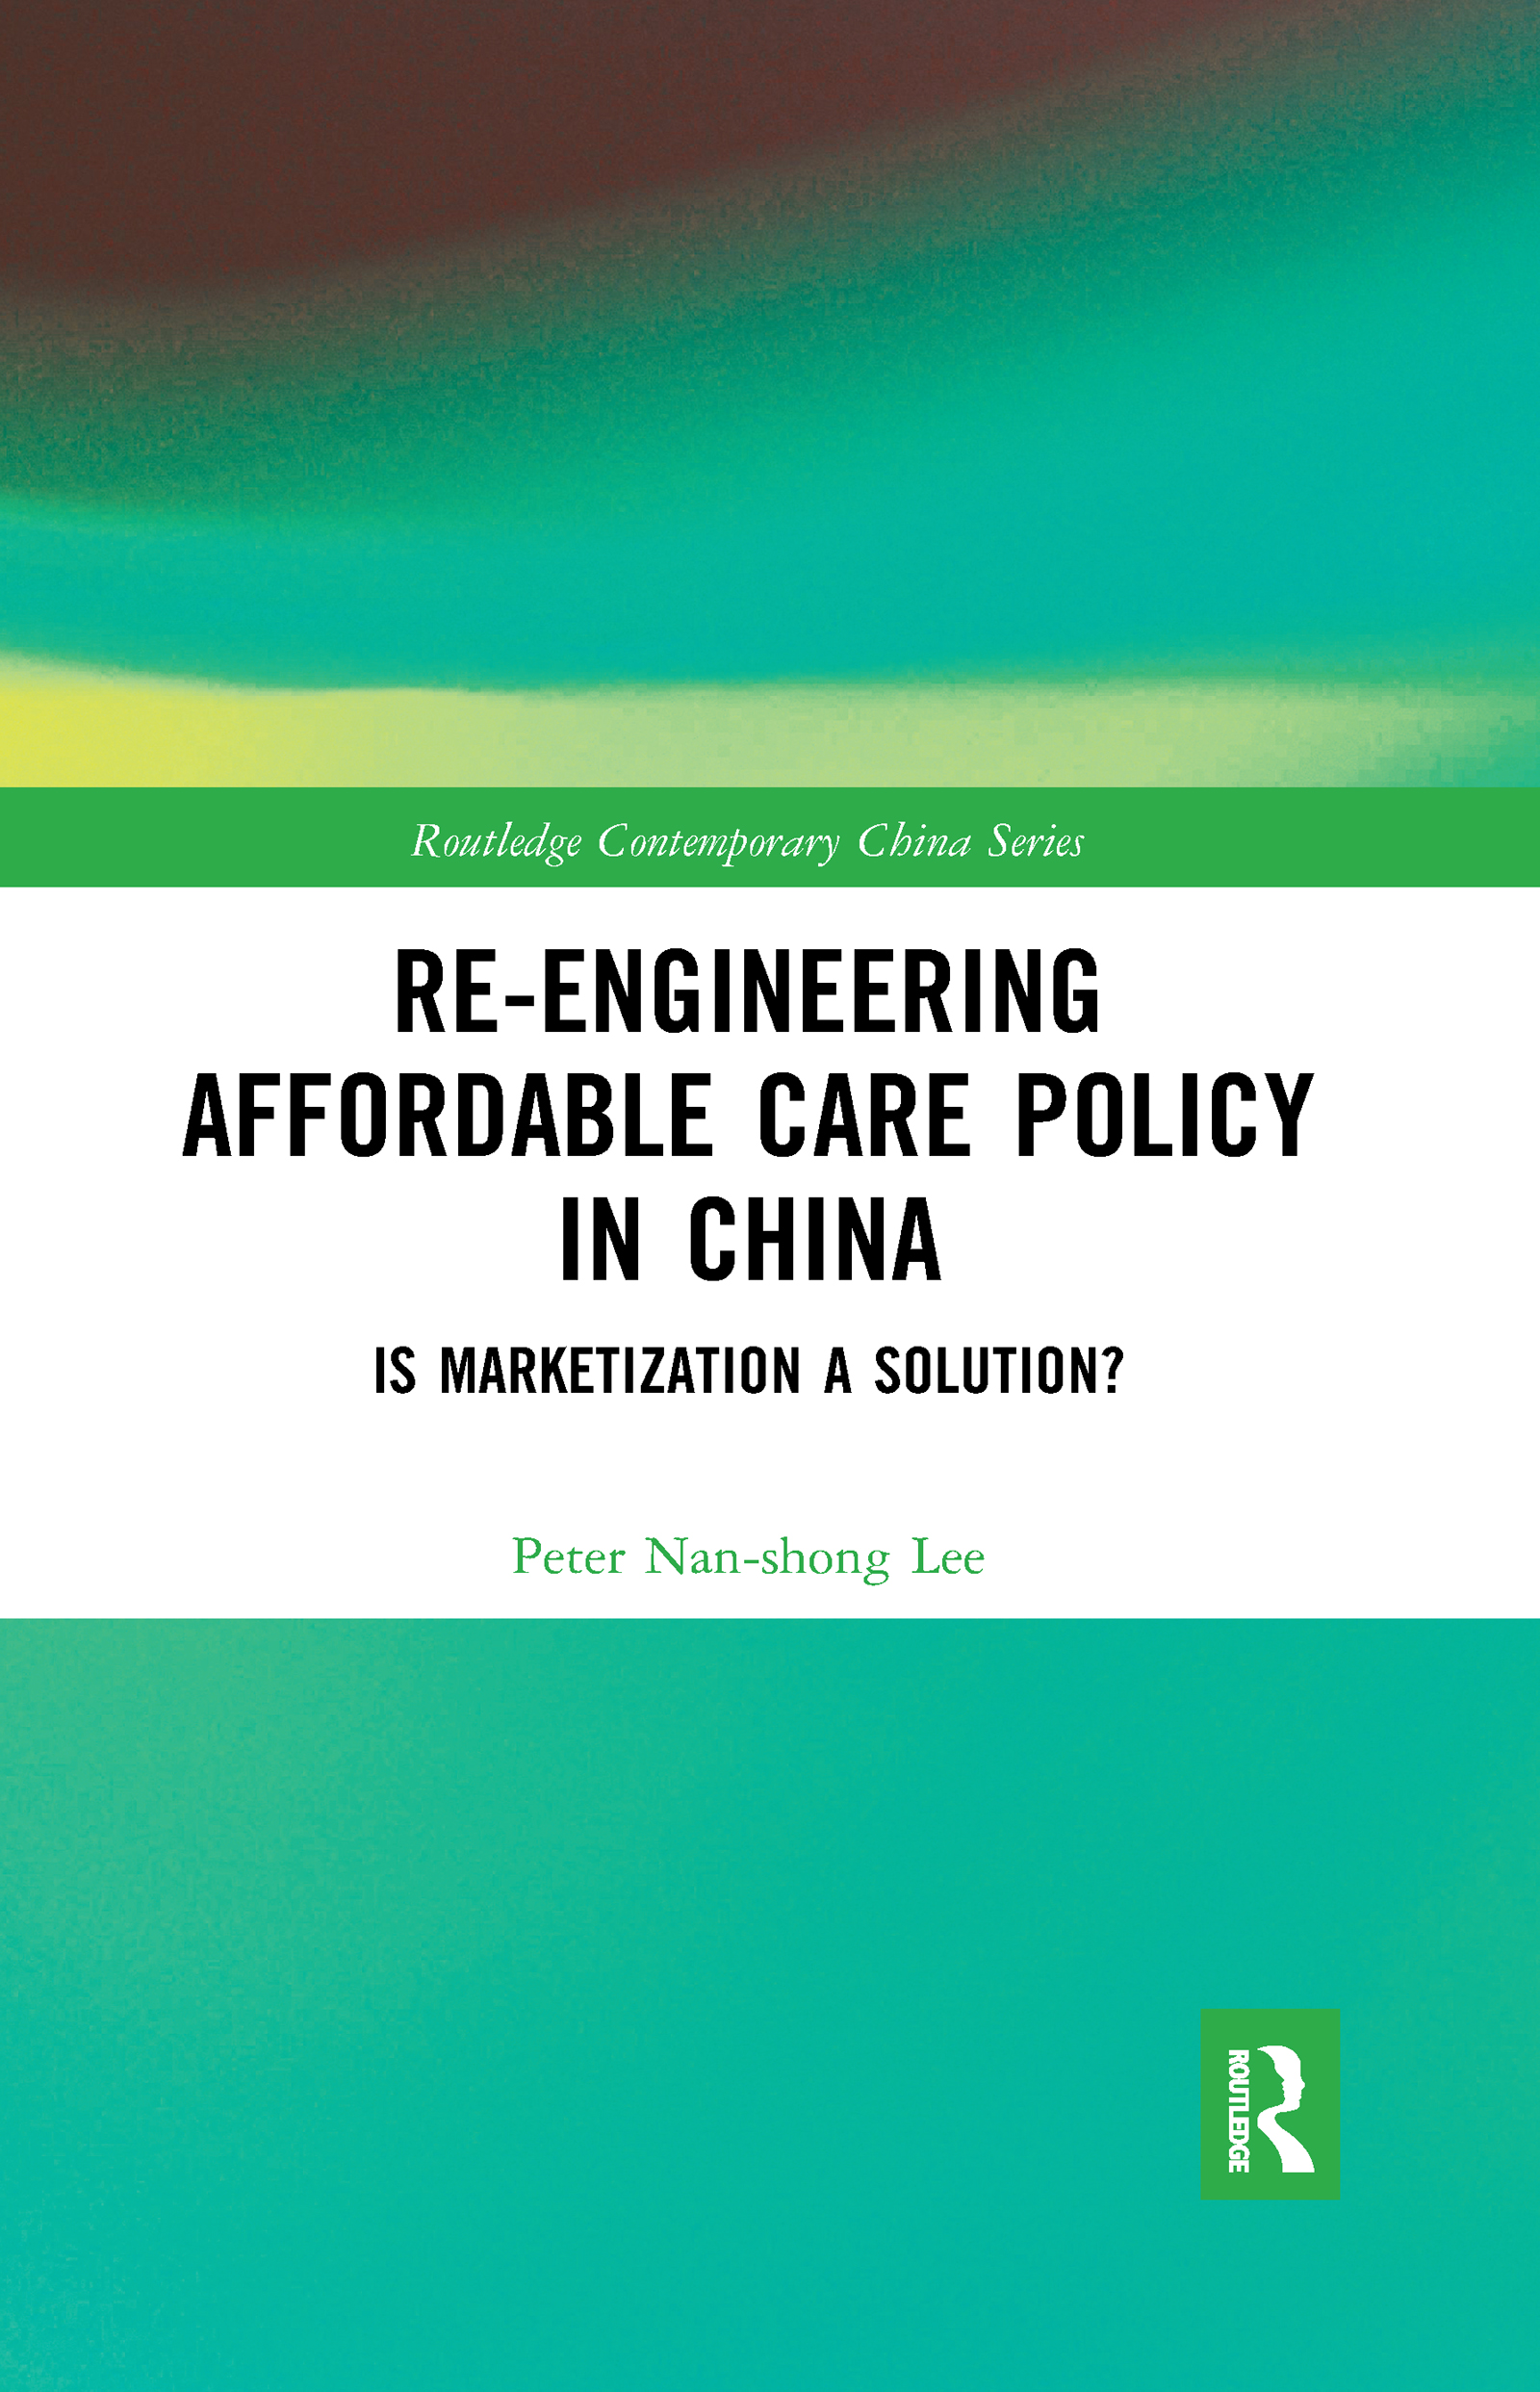 Re-engineering Affordable Care Policy in China